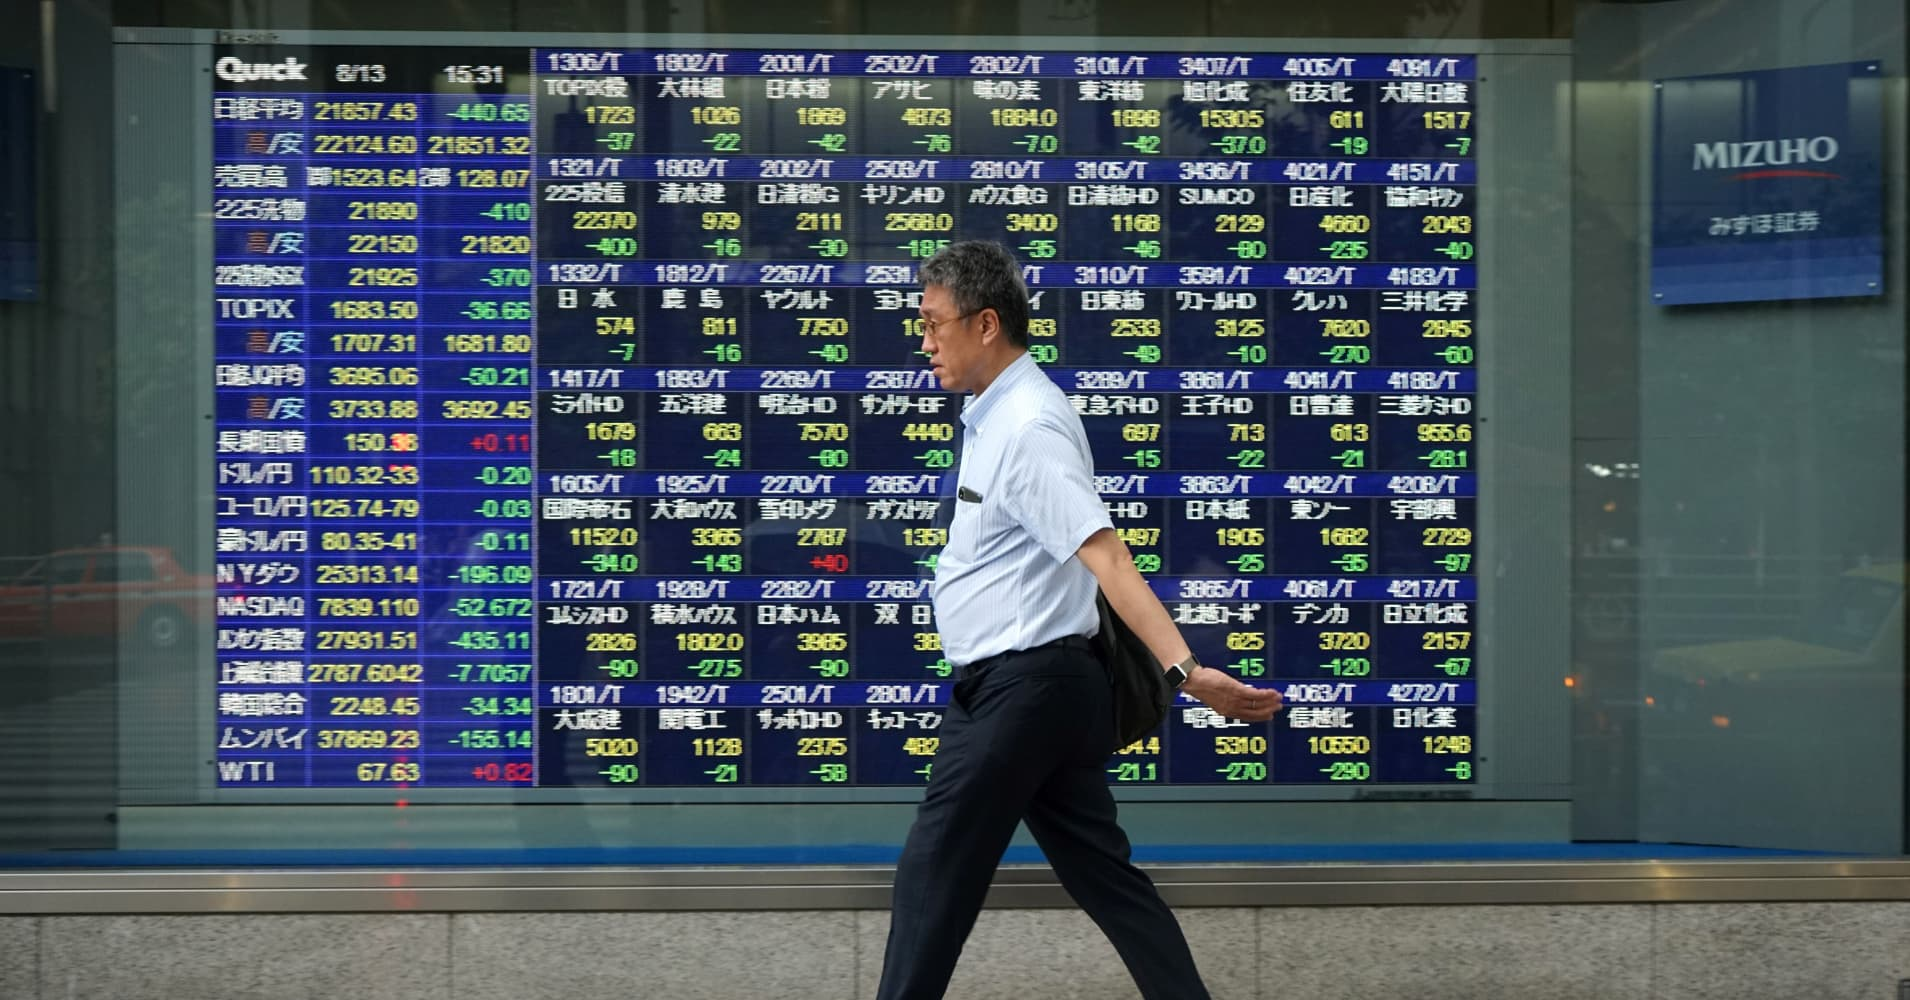 Shares in Japan tumble as investors worry about the global economy